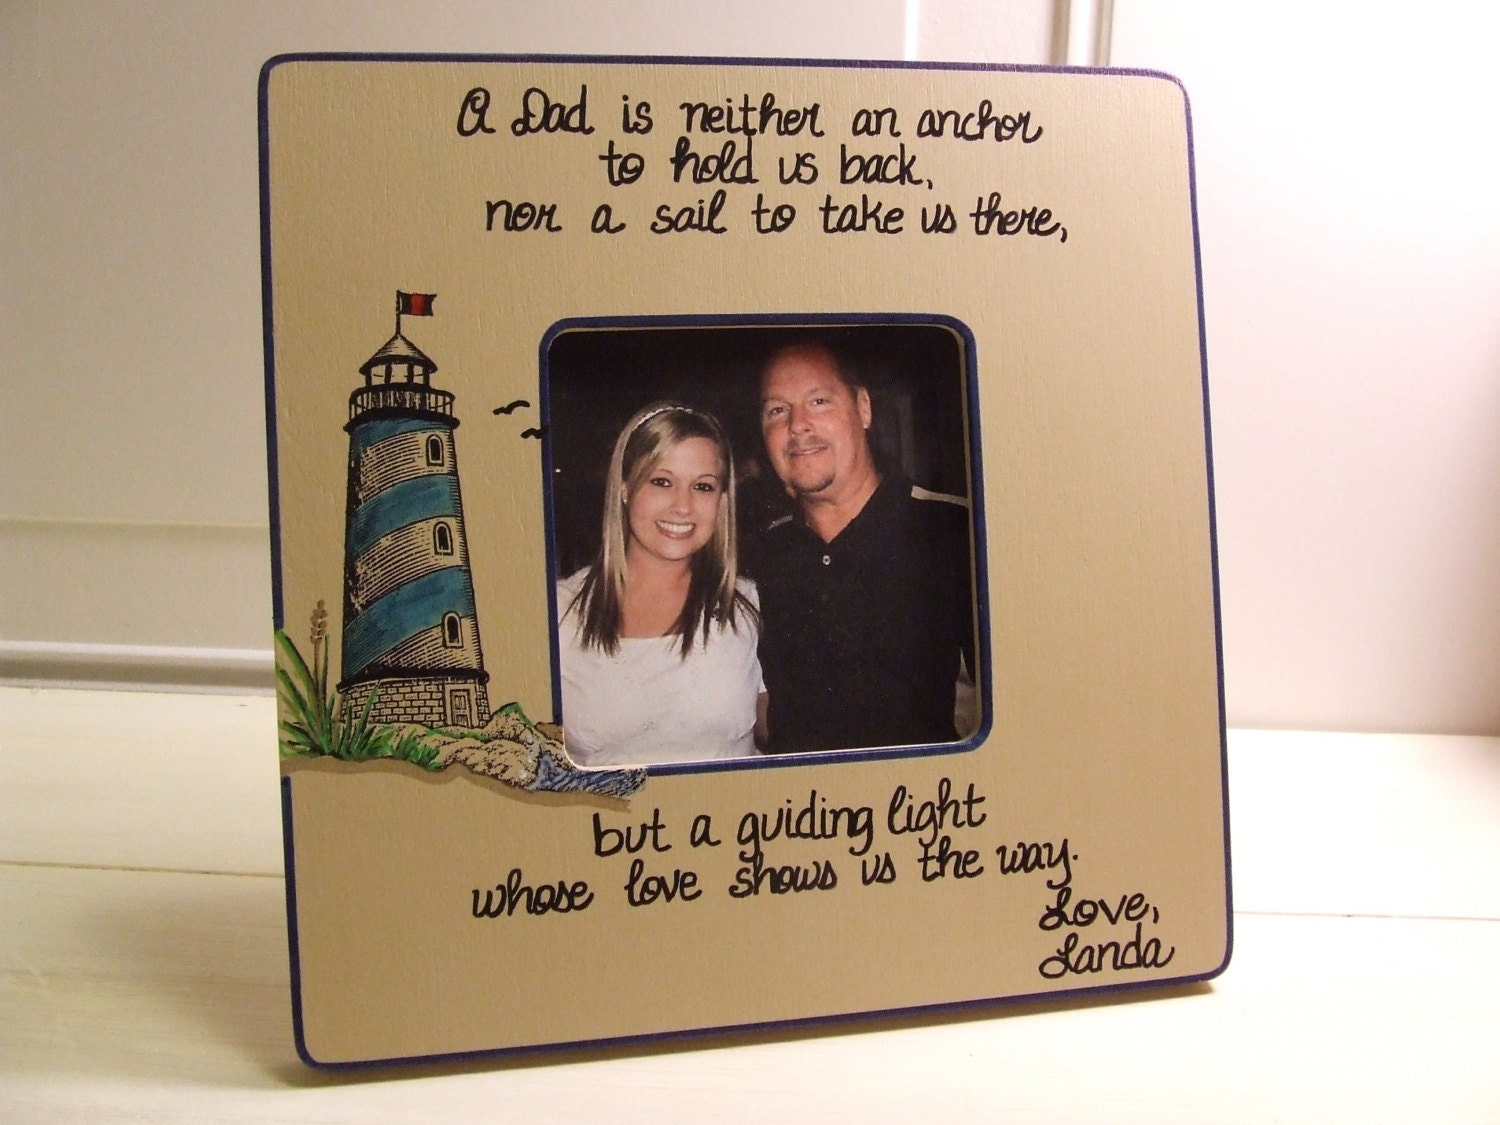 Father of the bride frame picture frame for dad wedding gift to father of the bride frame picture frame for dad wedding gift to dad from daughter dad birthday wedding frames quote frame grandfather gift from briahlakay jeuxipadfo Choice Image